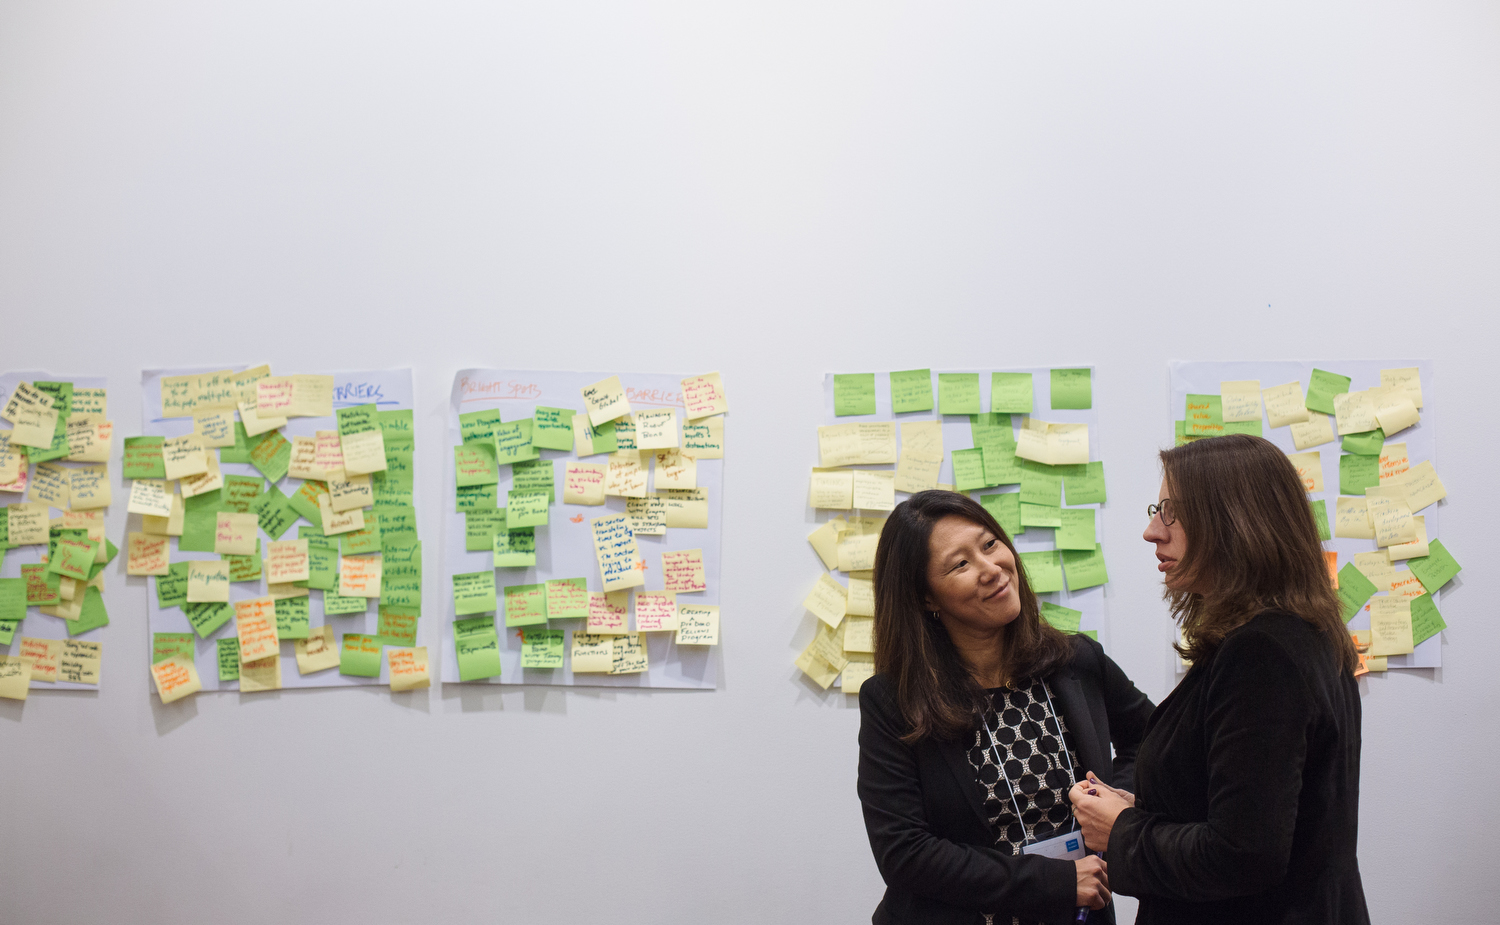 Discussions are held at the 2014 Global Pro Bono Summit in San Francisco on Feb. 26, 2014.